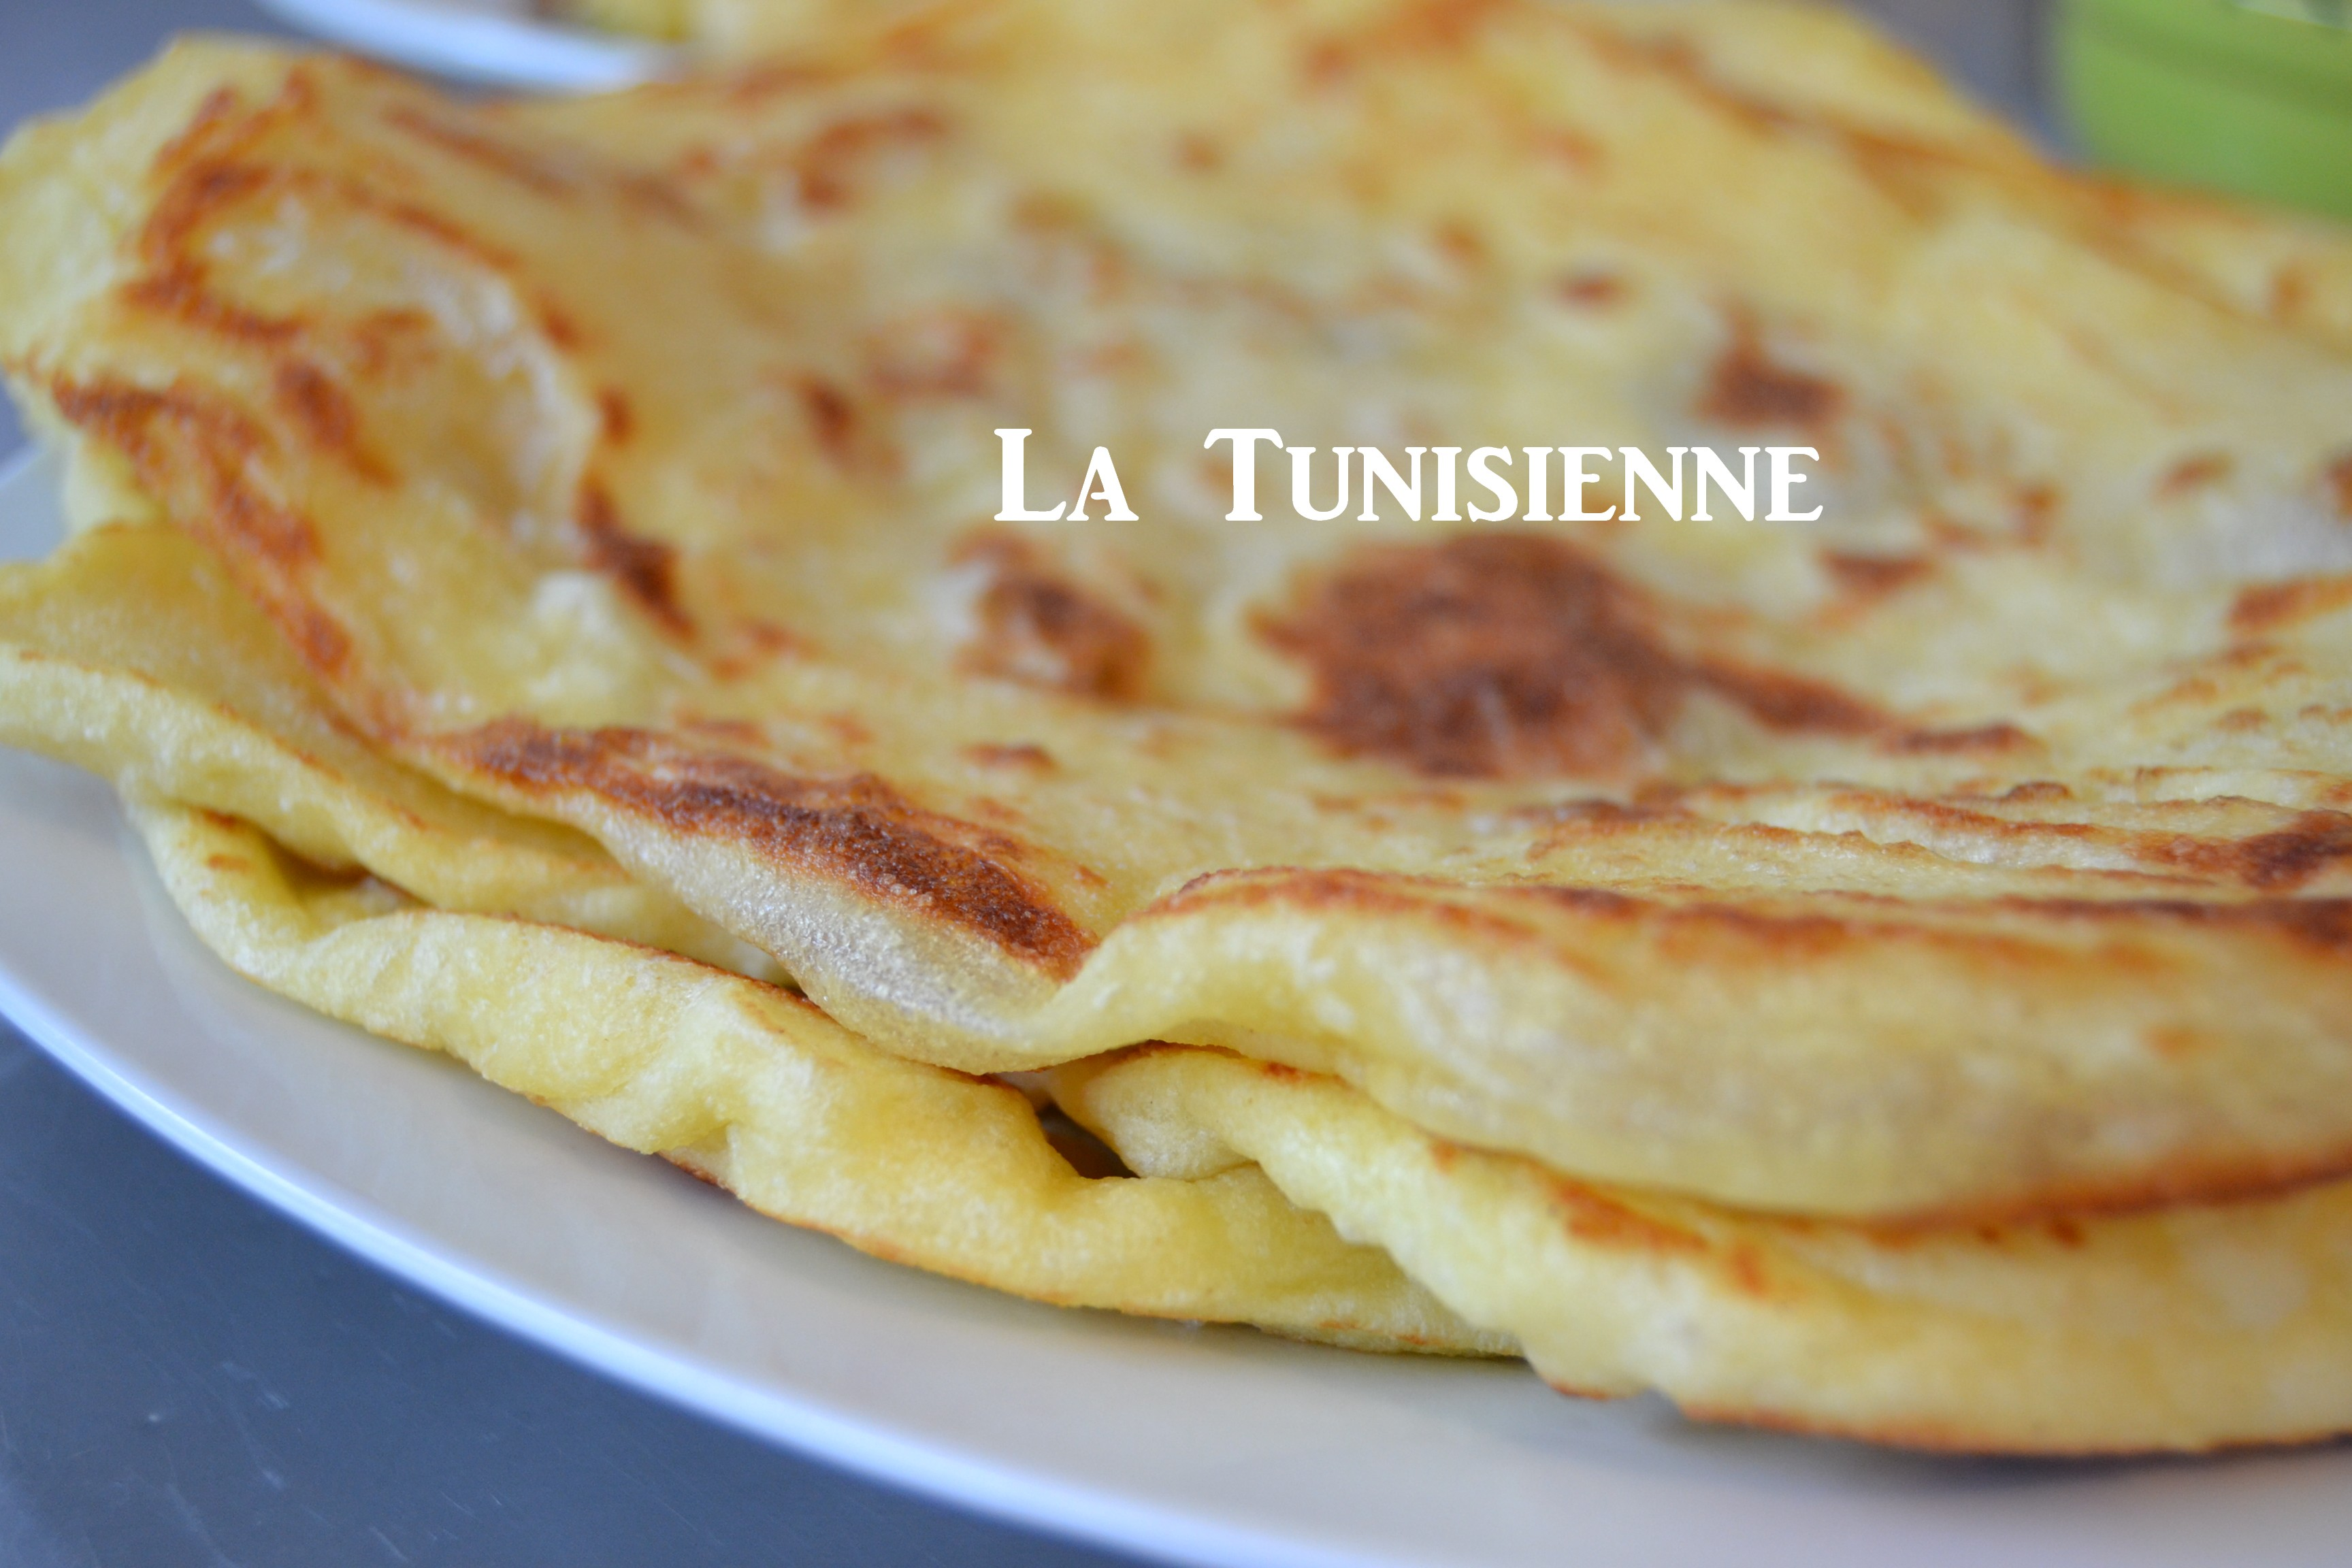 Galettes tunisiennes version rapide mleoui express - Recettes cuisine tunisienne ...